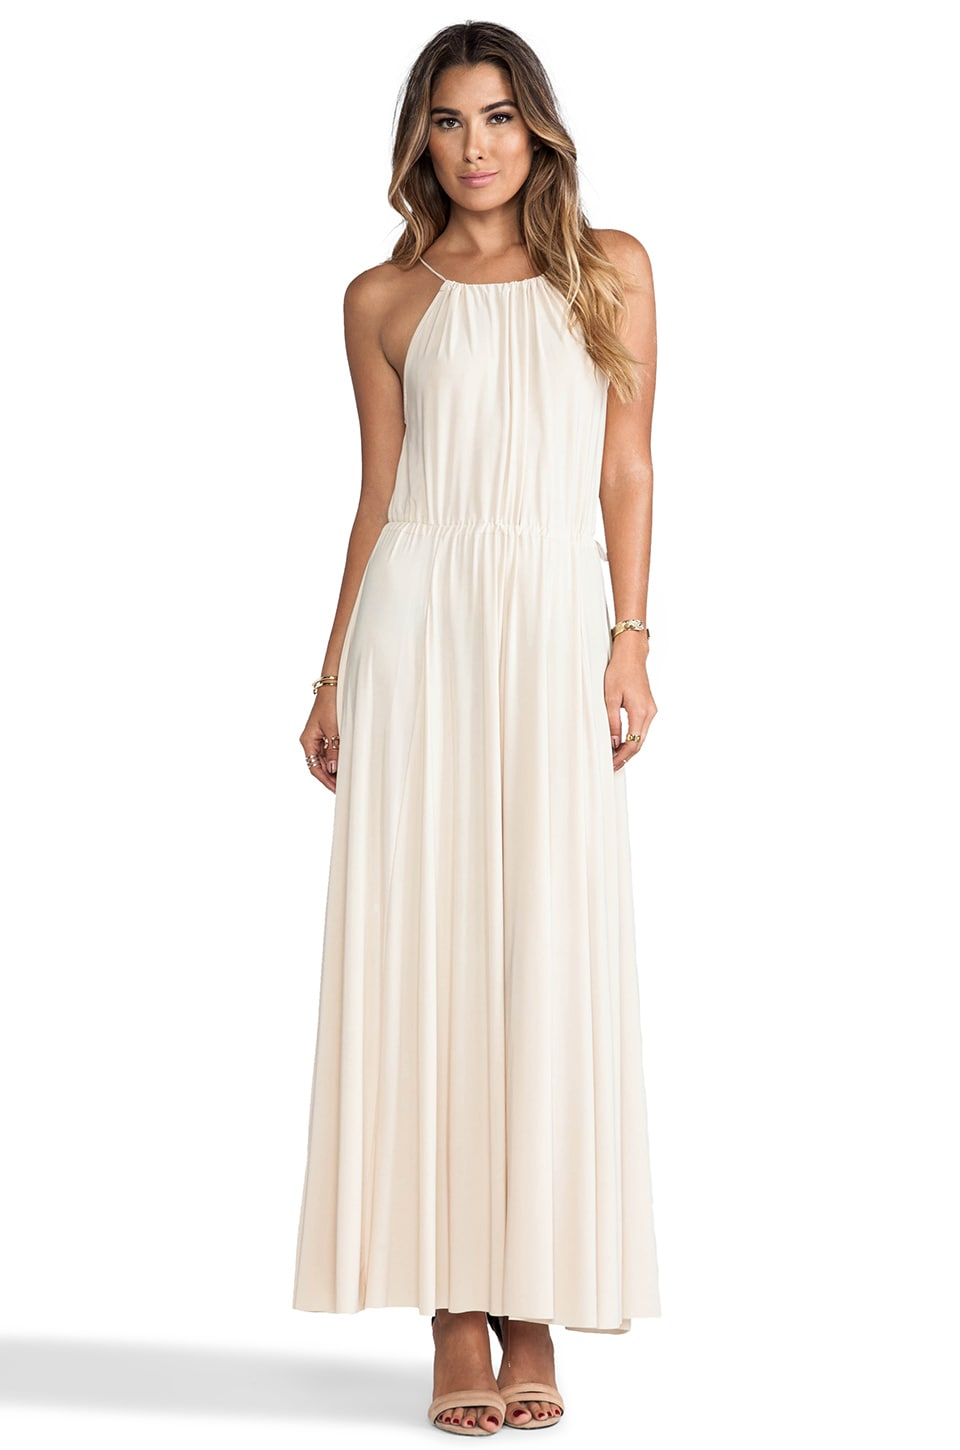 T-Bags LosAngeles Tank Maxi Dress with Tonal Hem and Trim in Cream